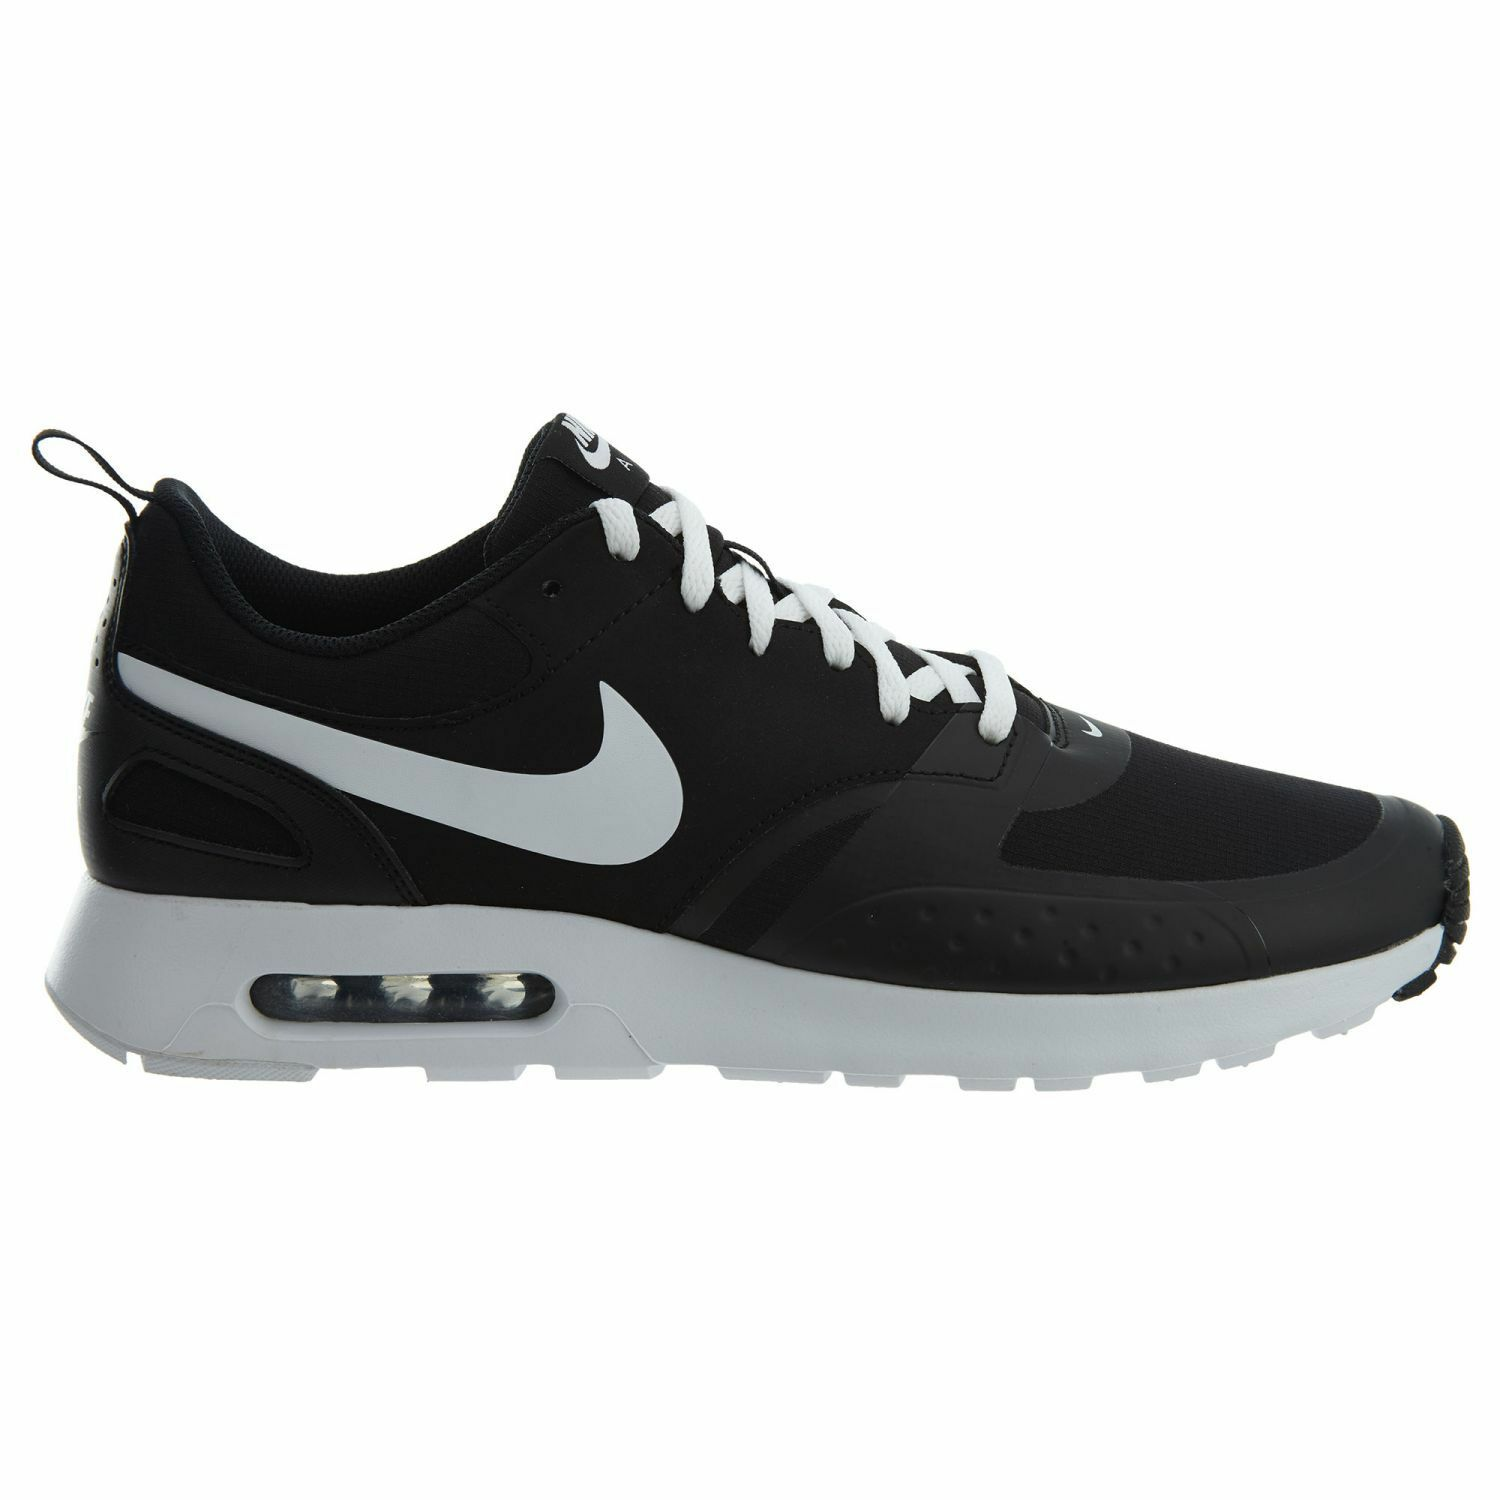 Nike Air Max Vision Mens 918230-007 Black White Athletic Running Shoes Size 8.5